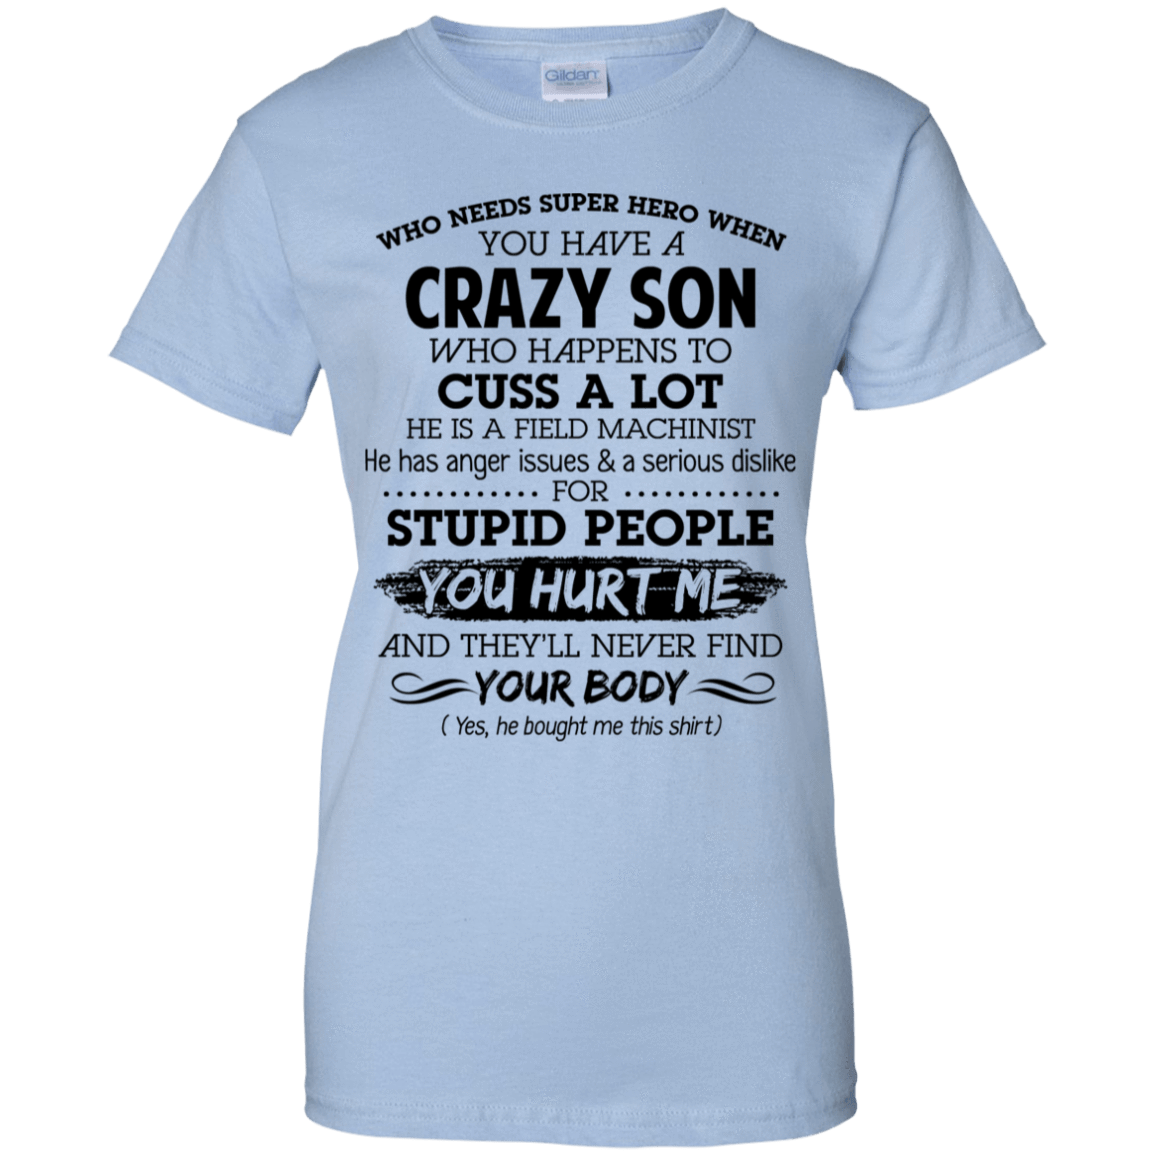 Have Crazy Son He Is A Field Machinist Mother's Day Gift 939-9257-73619451-44716 - Tee Ript